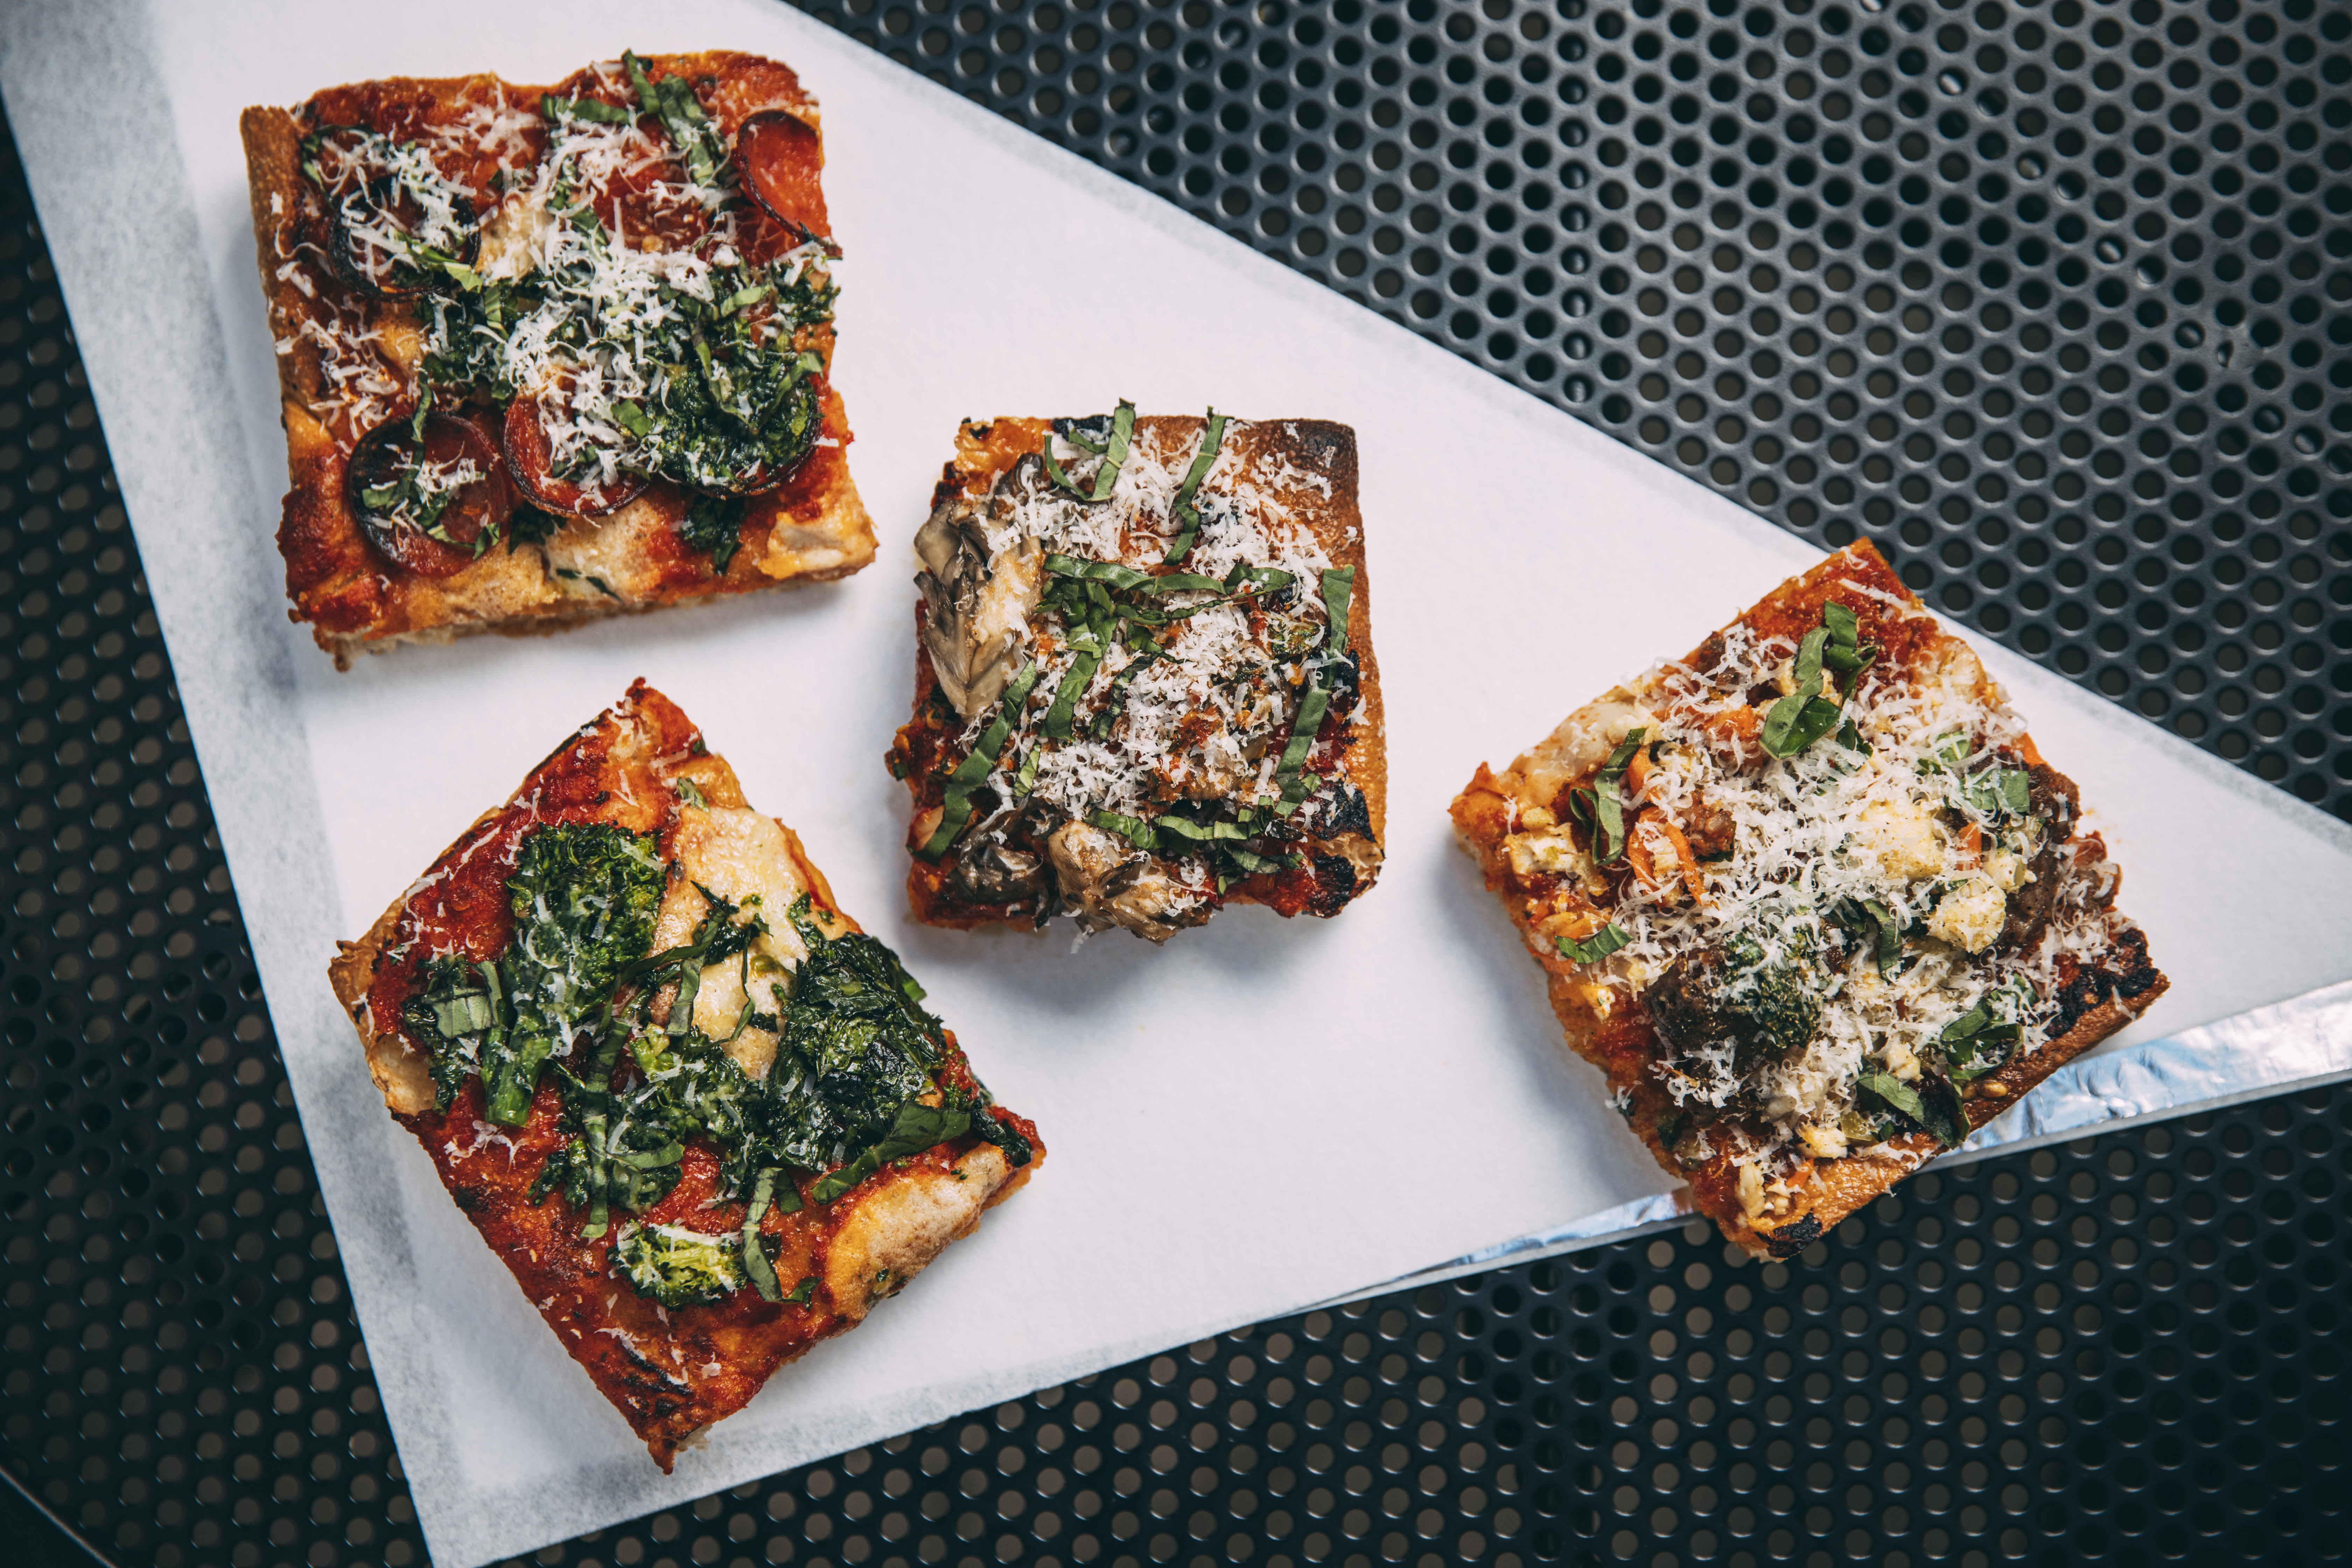 Four square slices of pizza